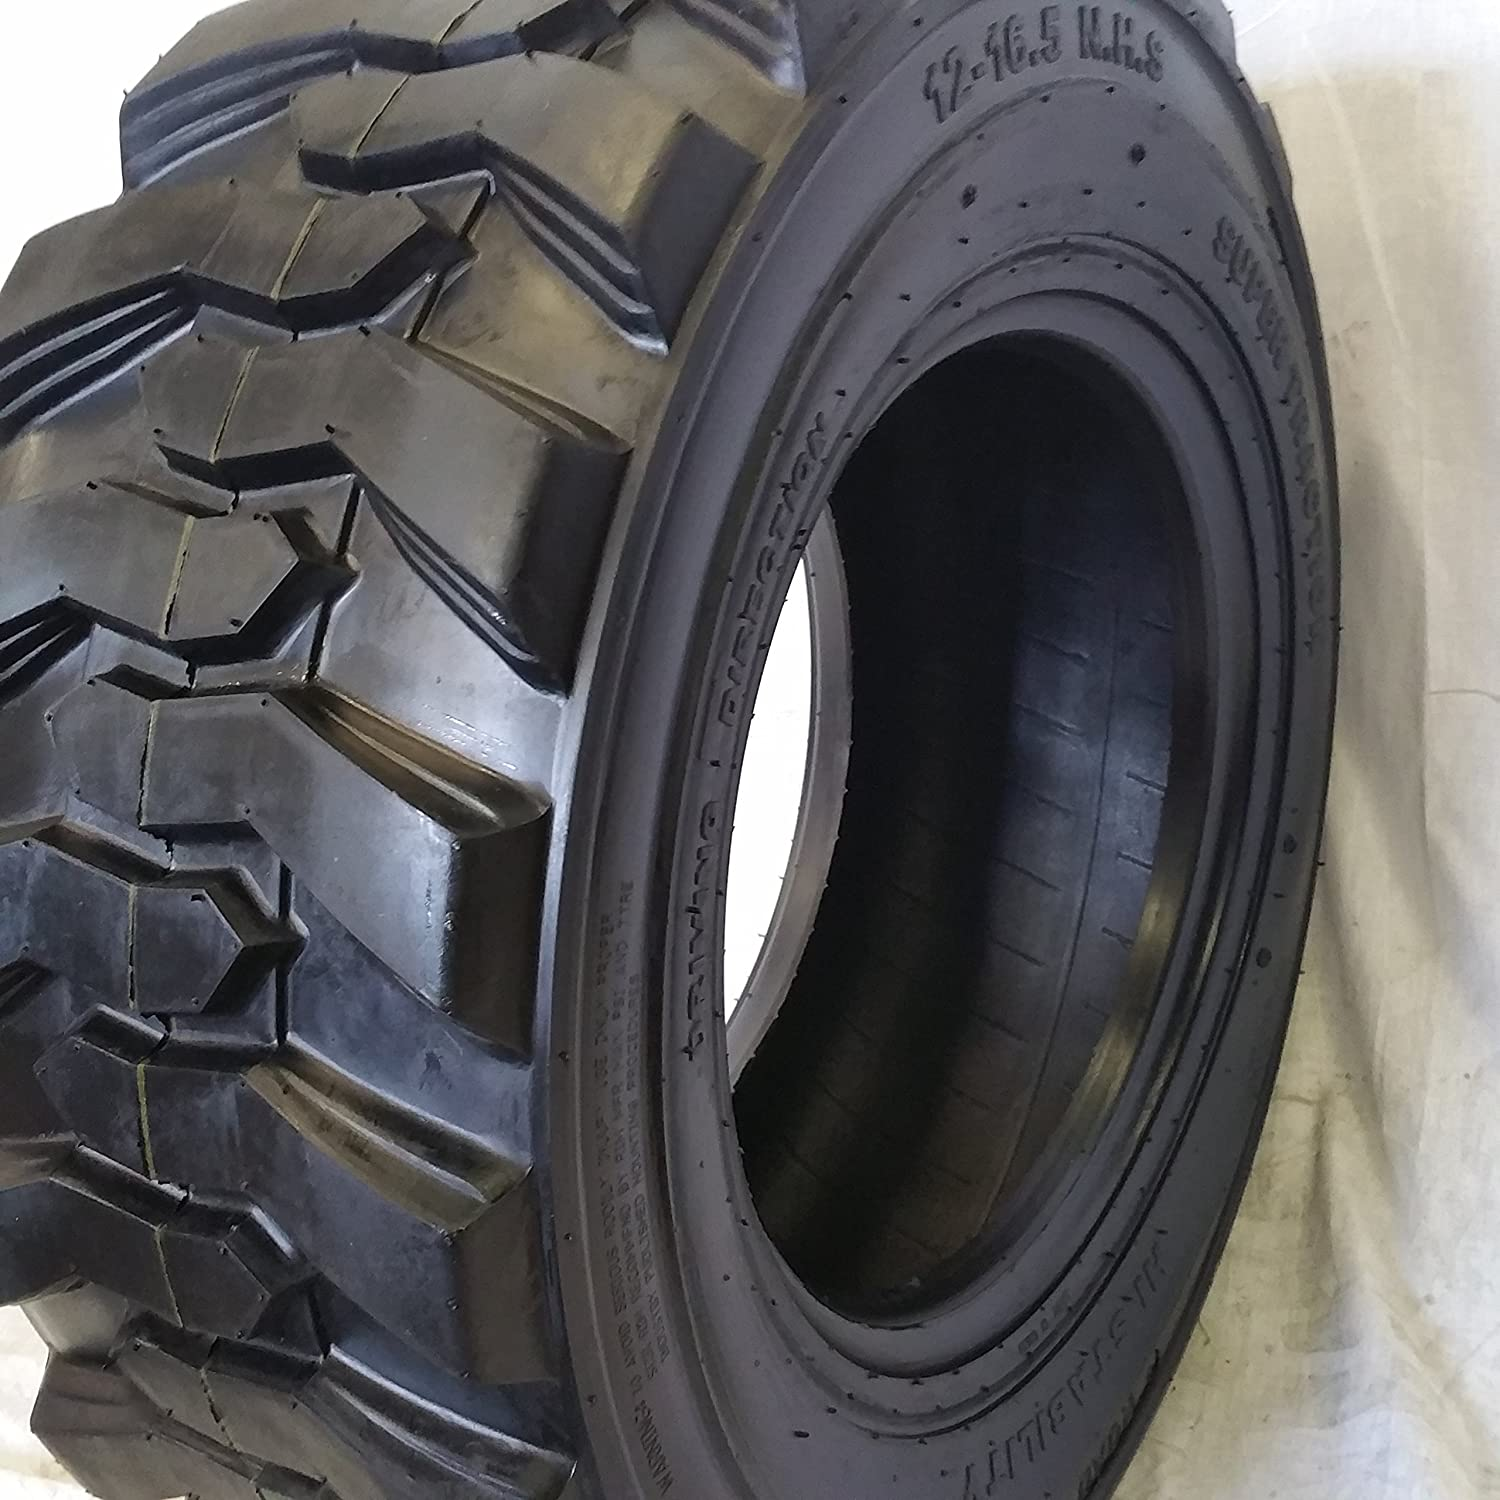 Amazon Com Road Crew 1 Tire 10 16 5 Skid Steer Loader Tire 14 Ply Nhs Sks 400 Automotive